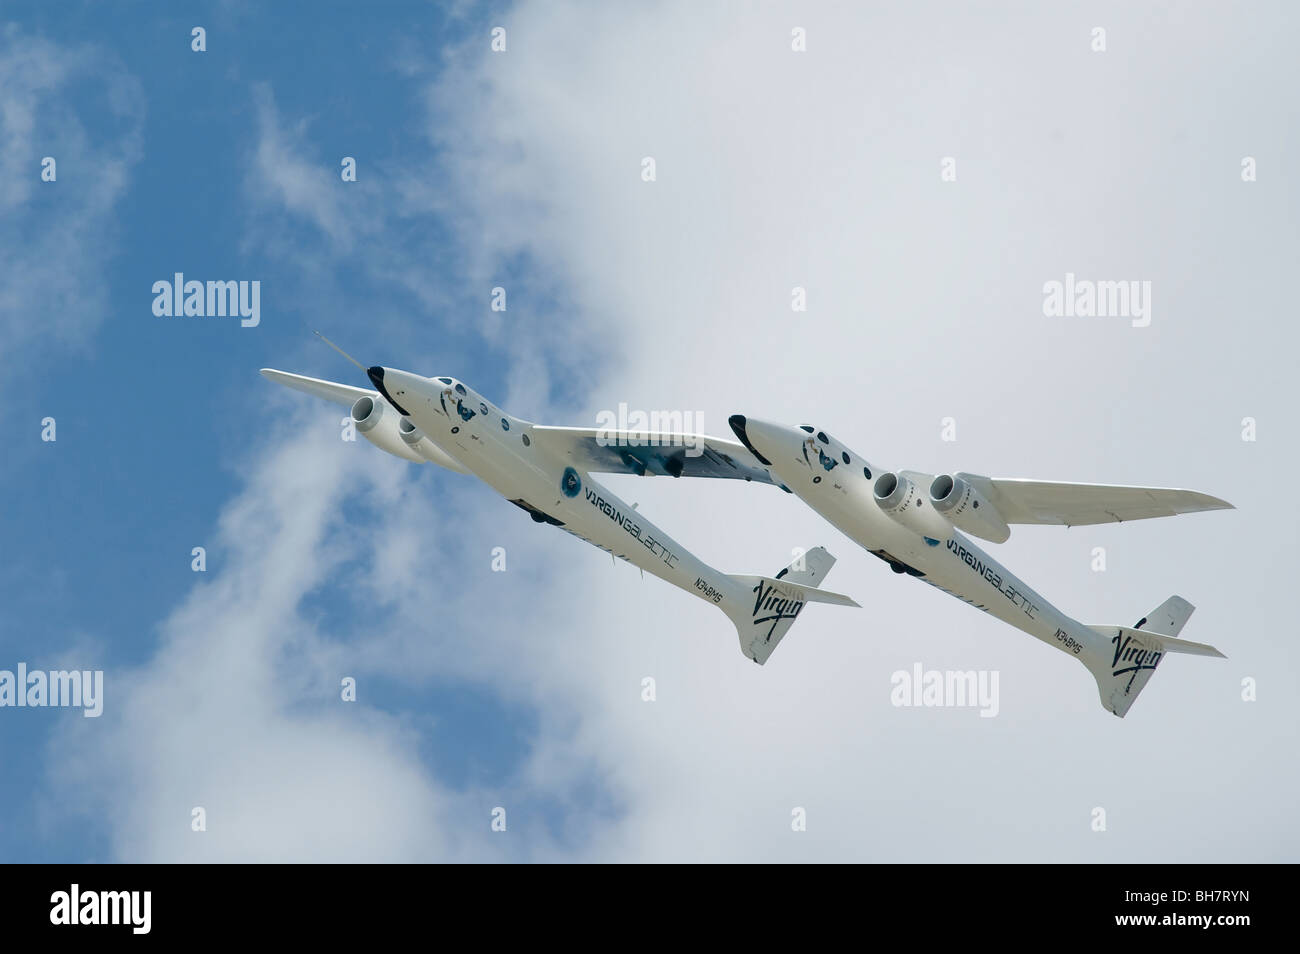 Virgin Galactic WhiteKnightTwo air launch vehicle in an exhibition flight. - Stock Image